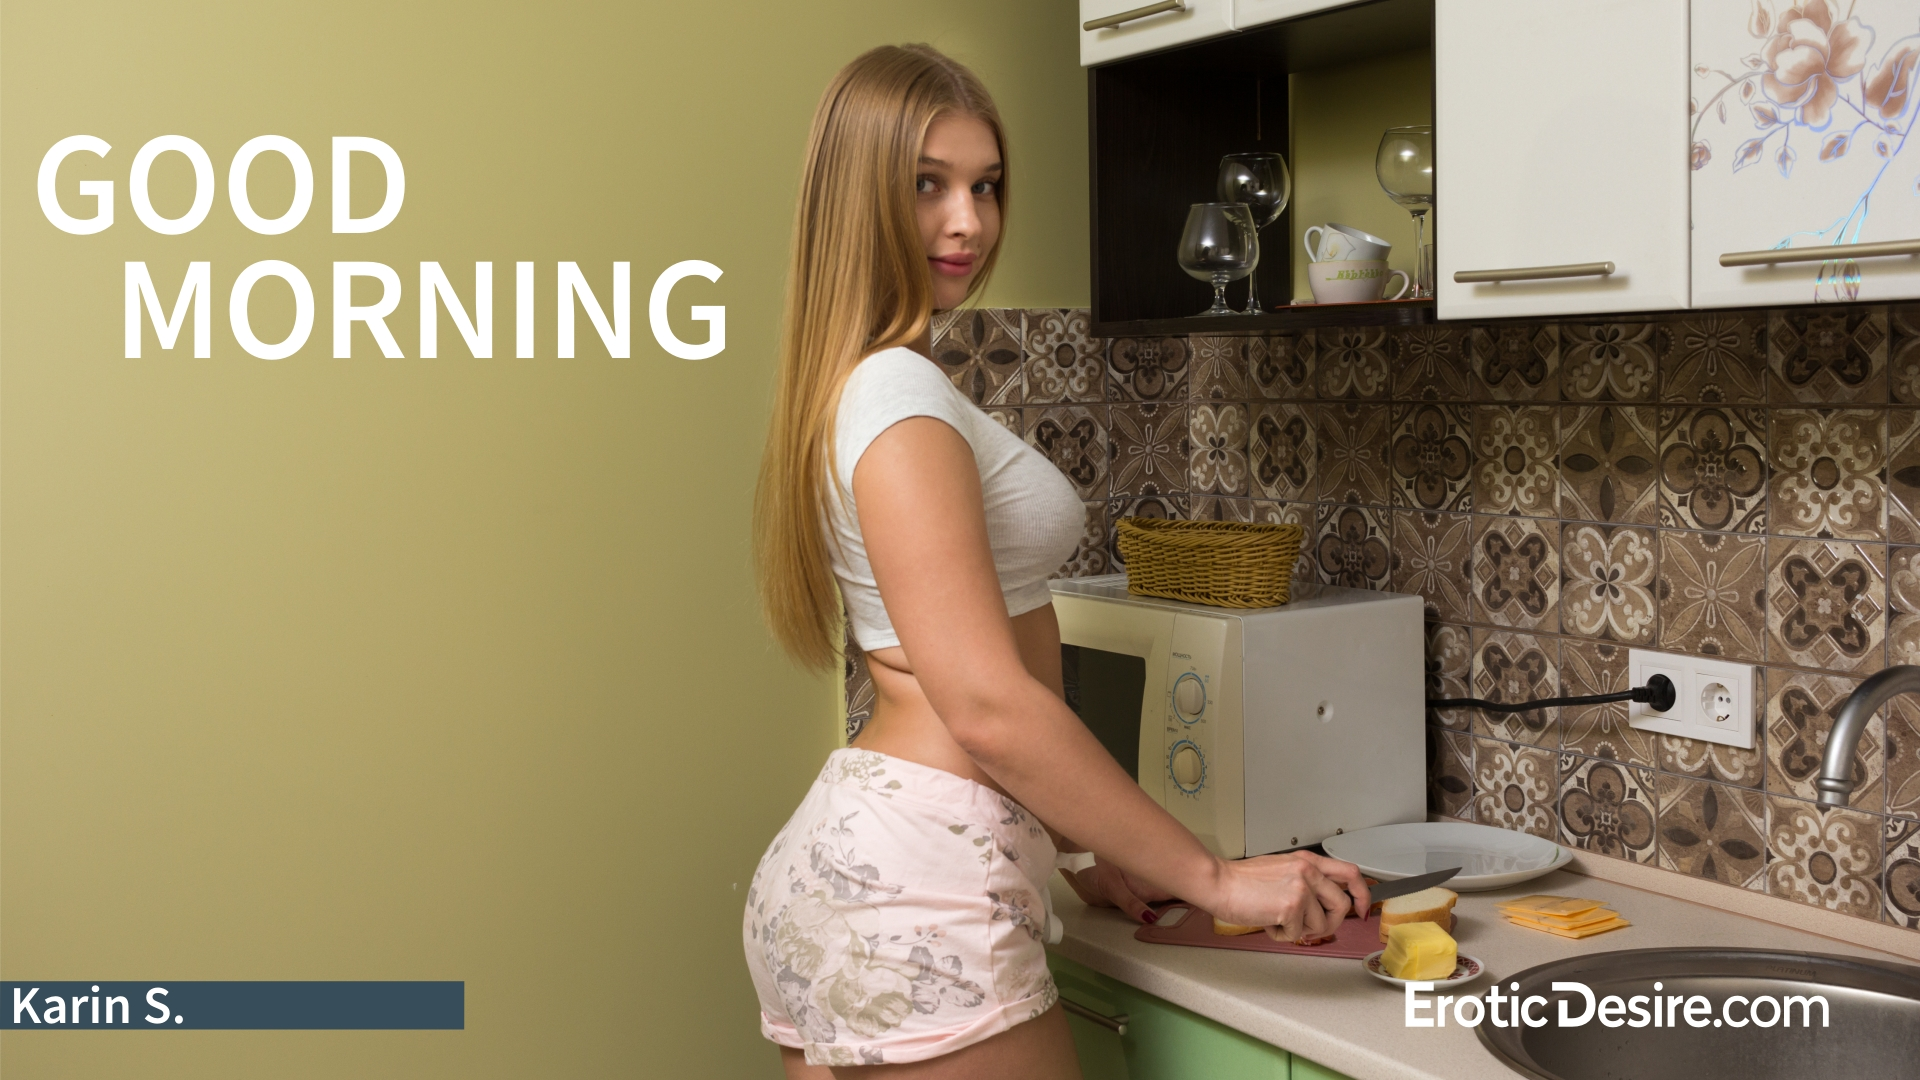 Karin S in Good Morning Video Cover Image